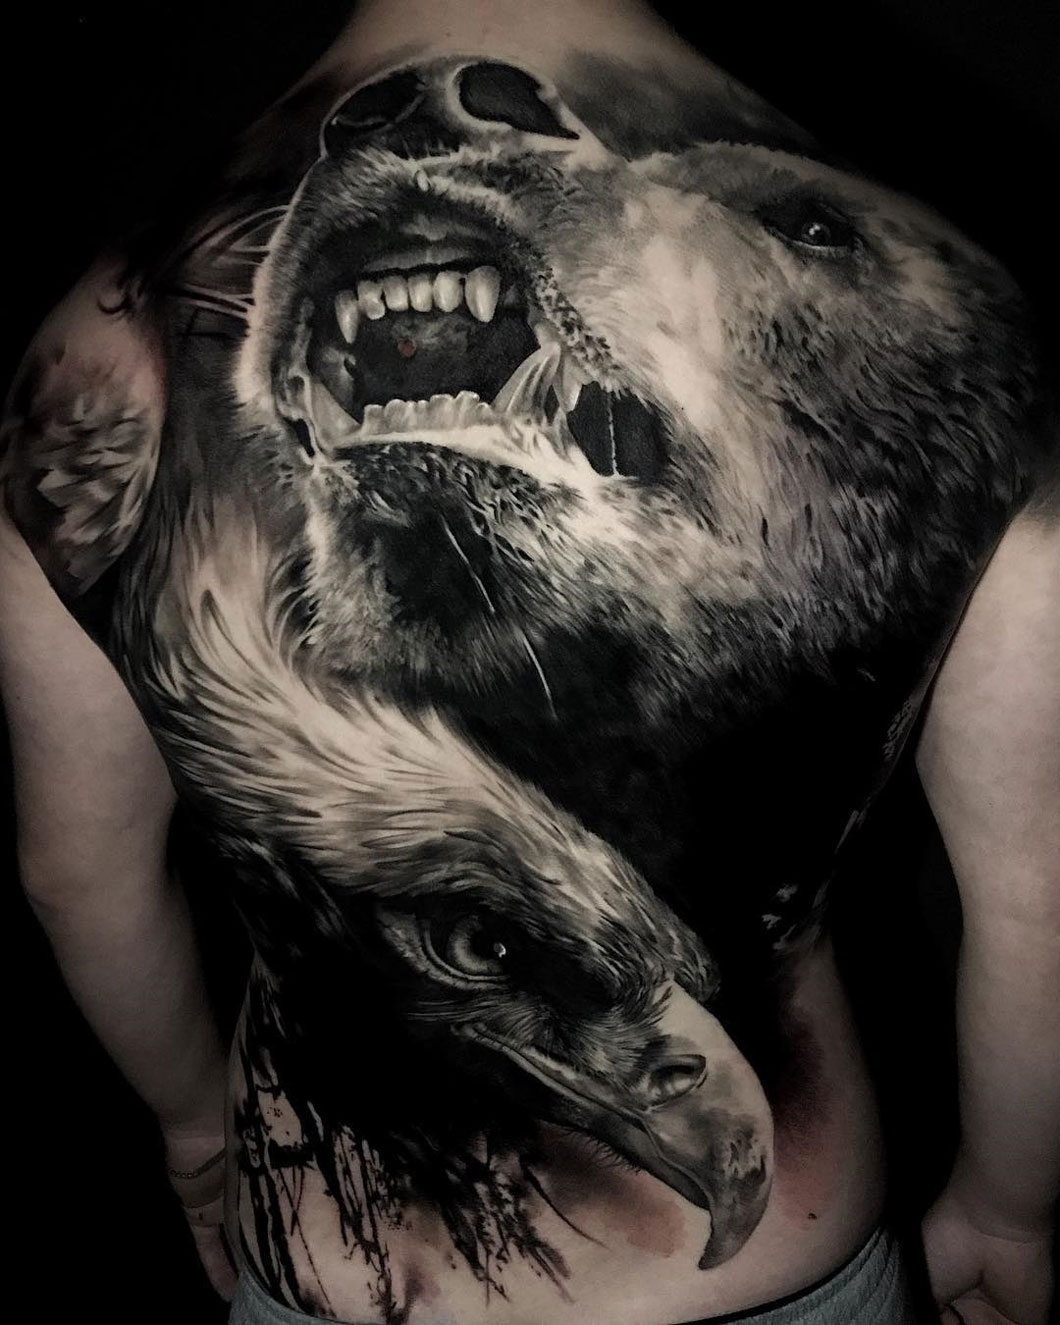 Bear & eagle back tattoo